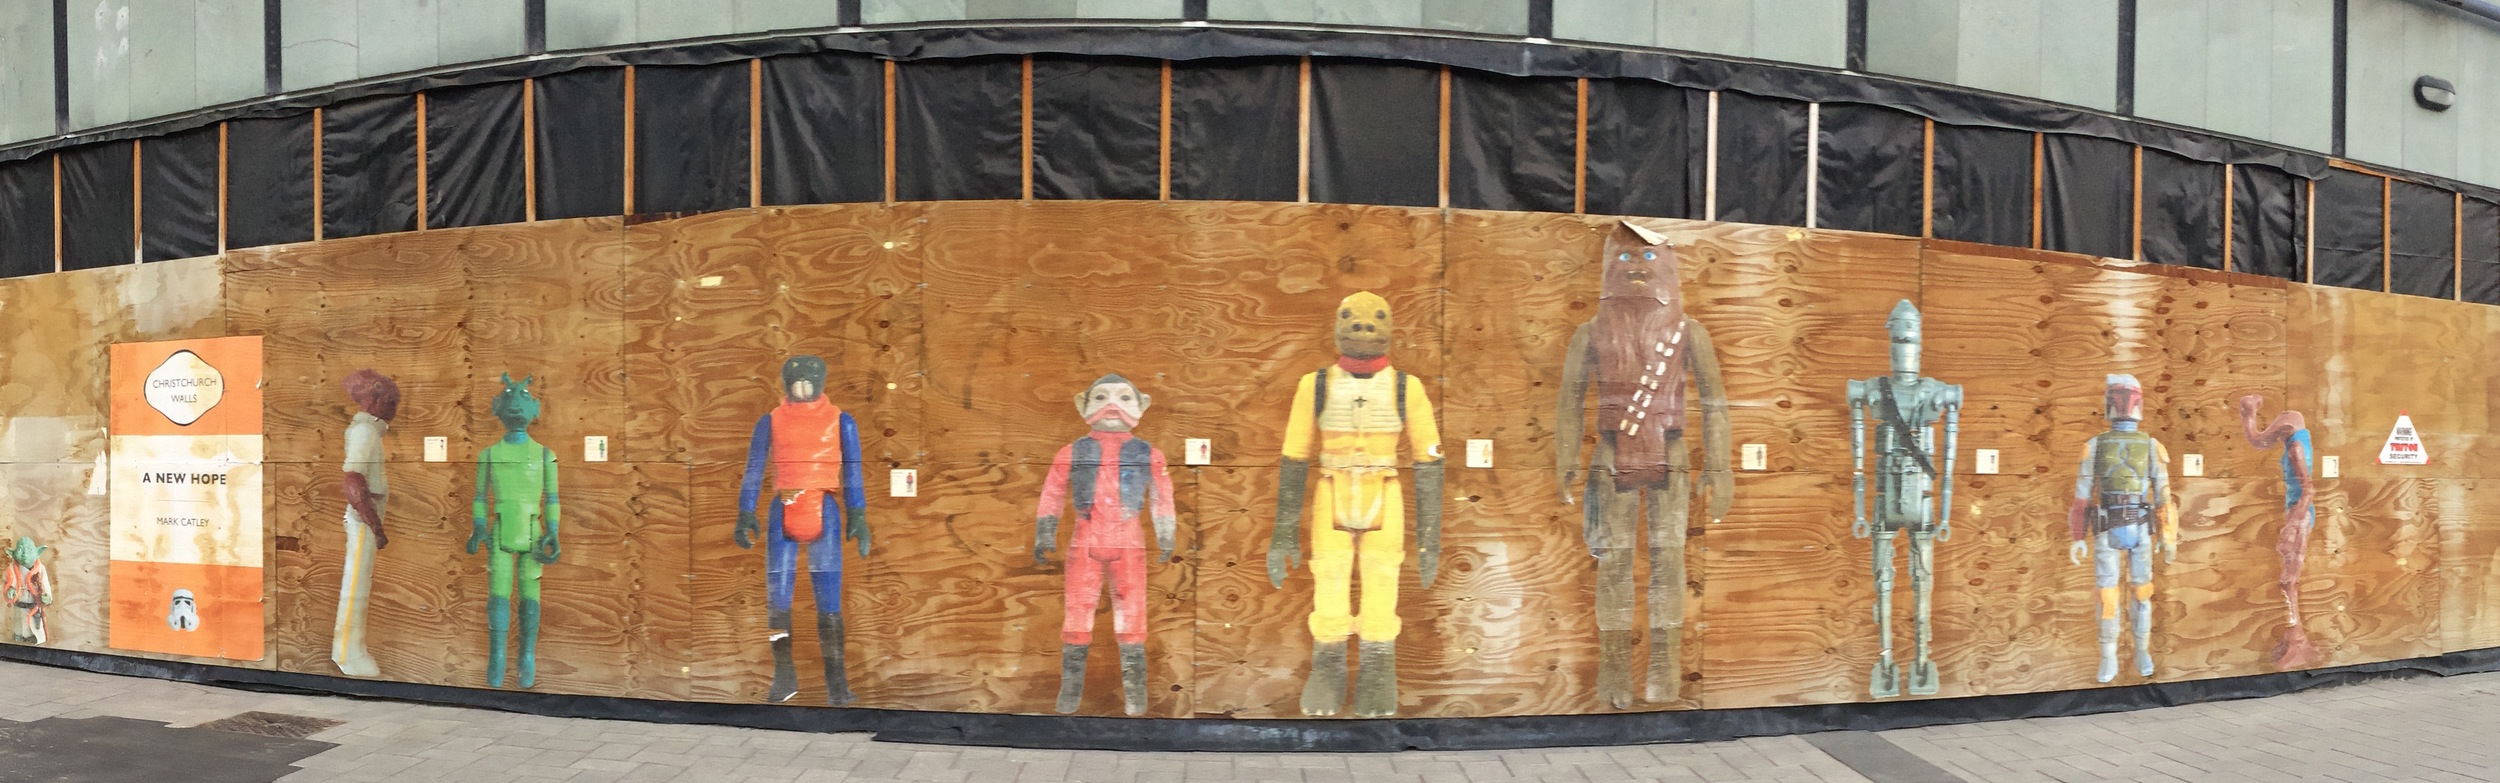 Downtown Christchurch may be under construction, but they seem to be handling it well.